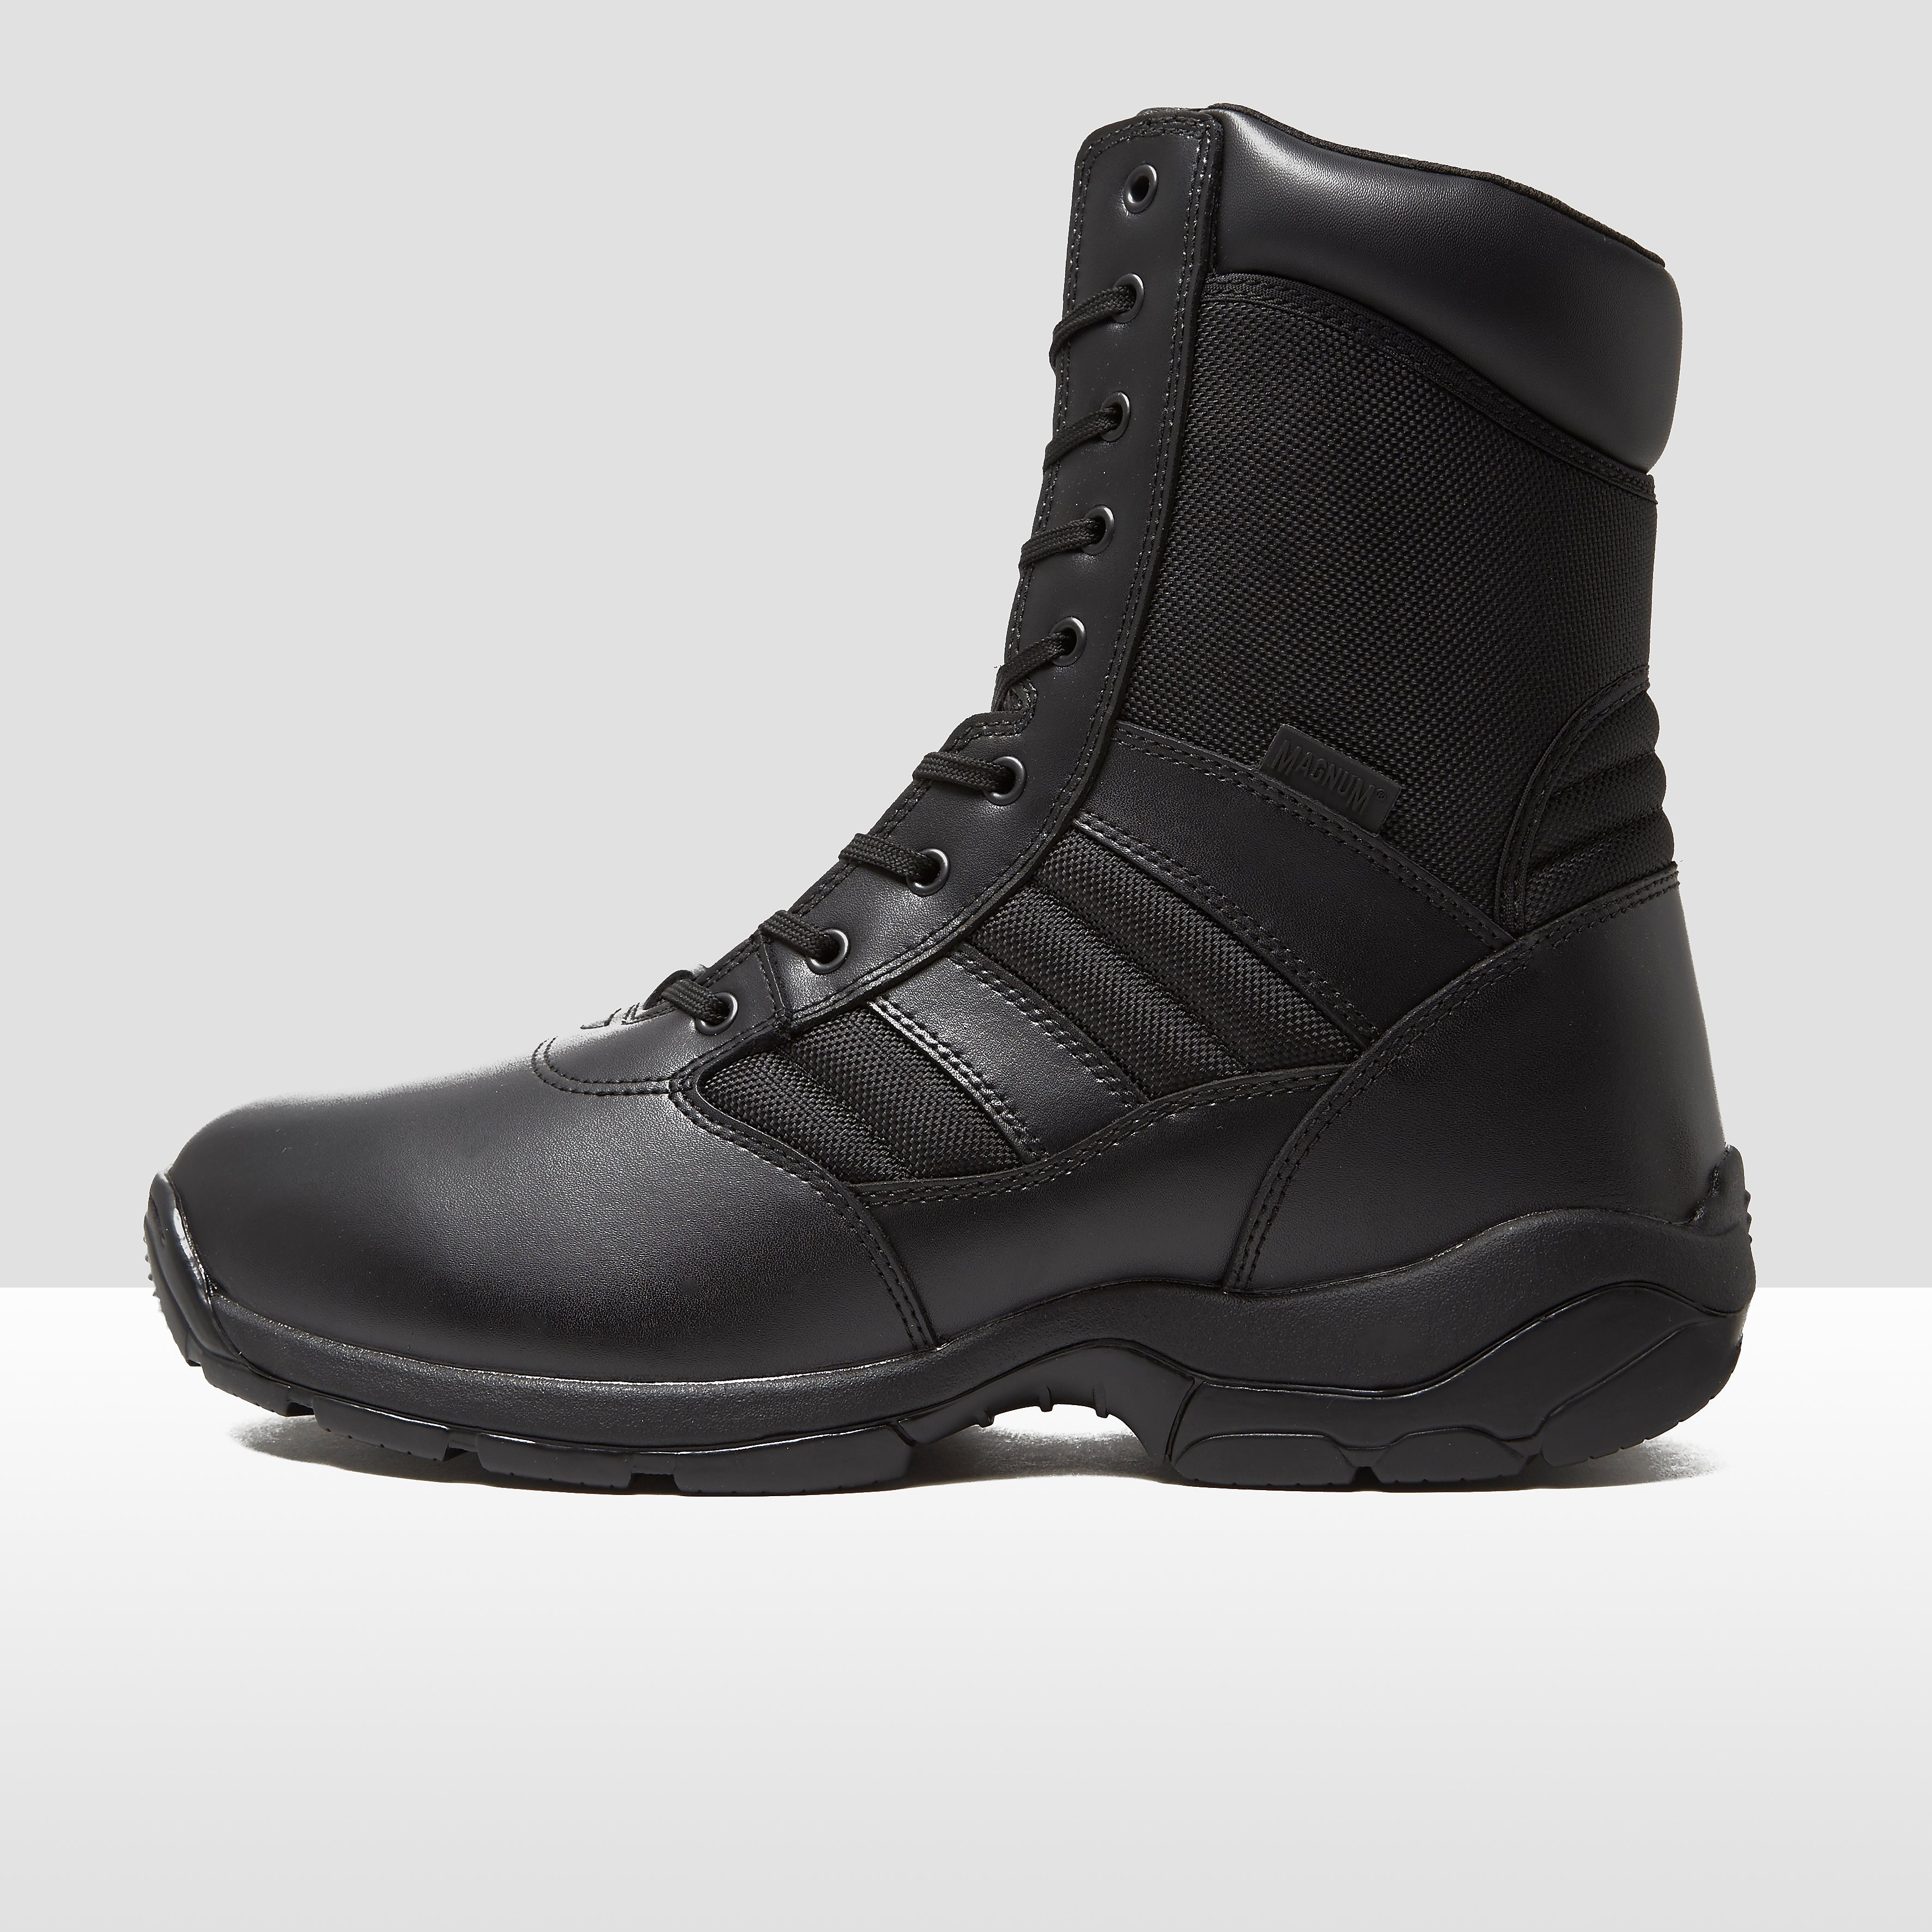 MAGNUM Panther 8.0 Side Zip Work Boot